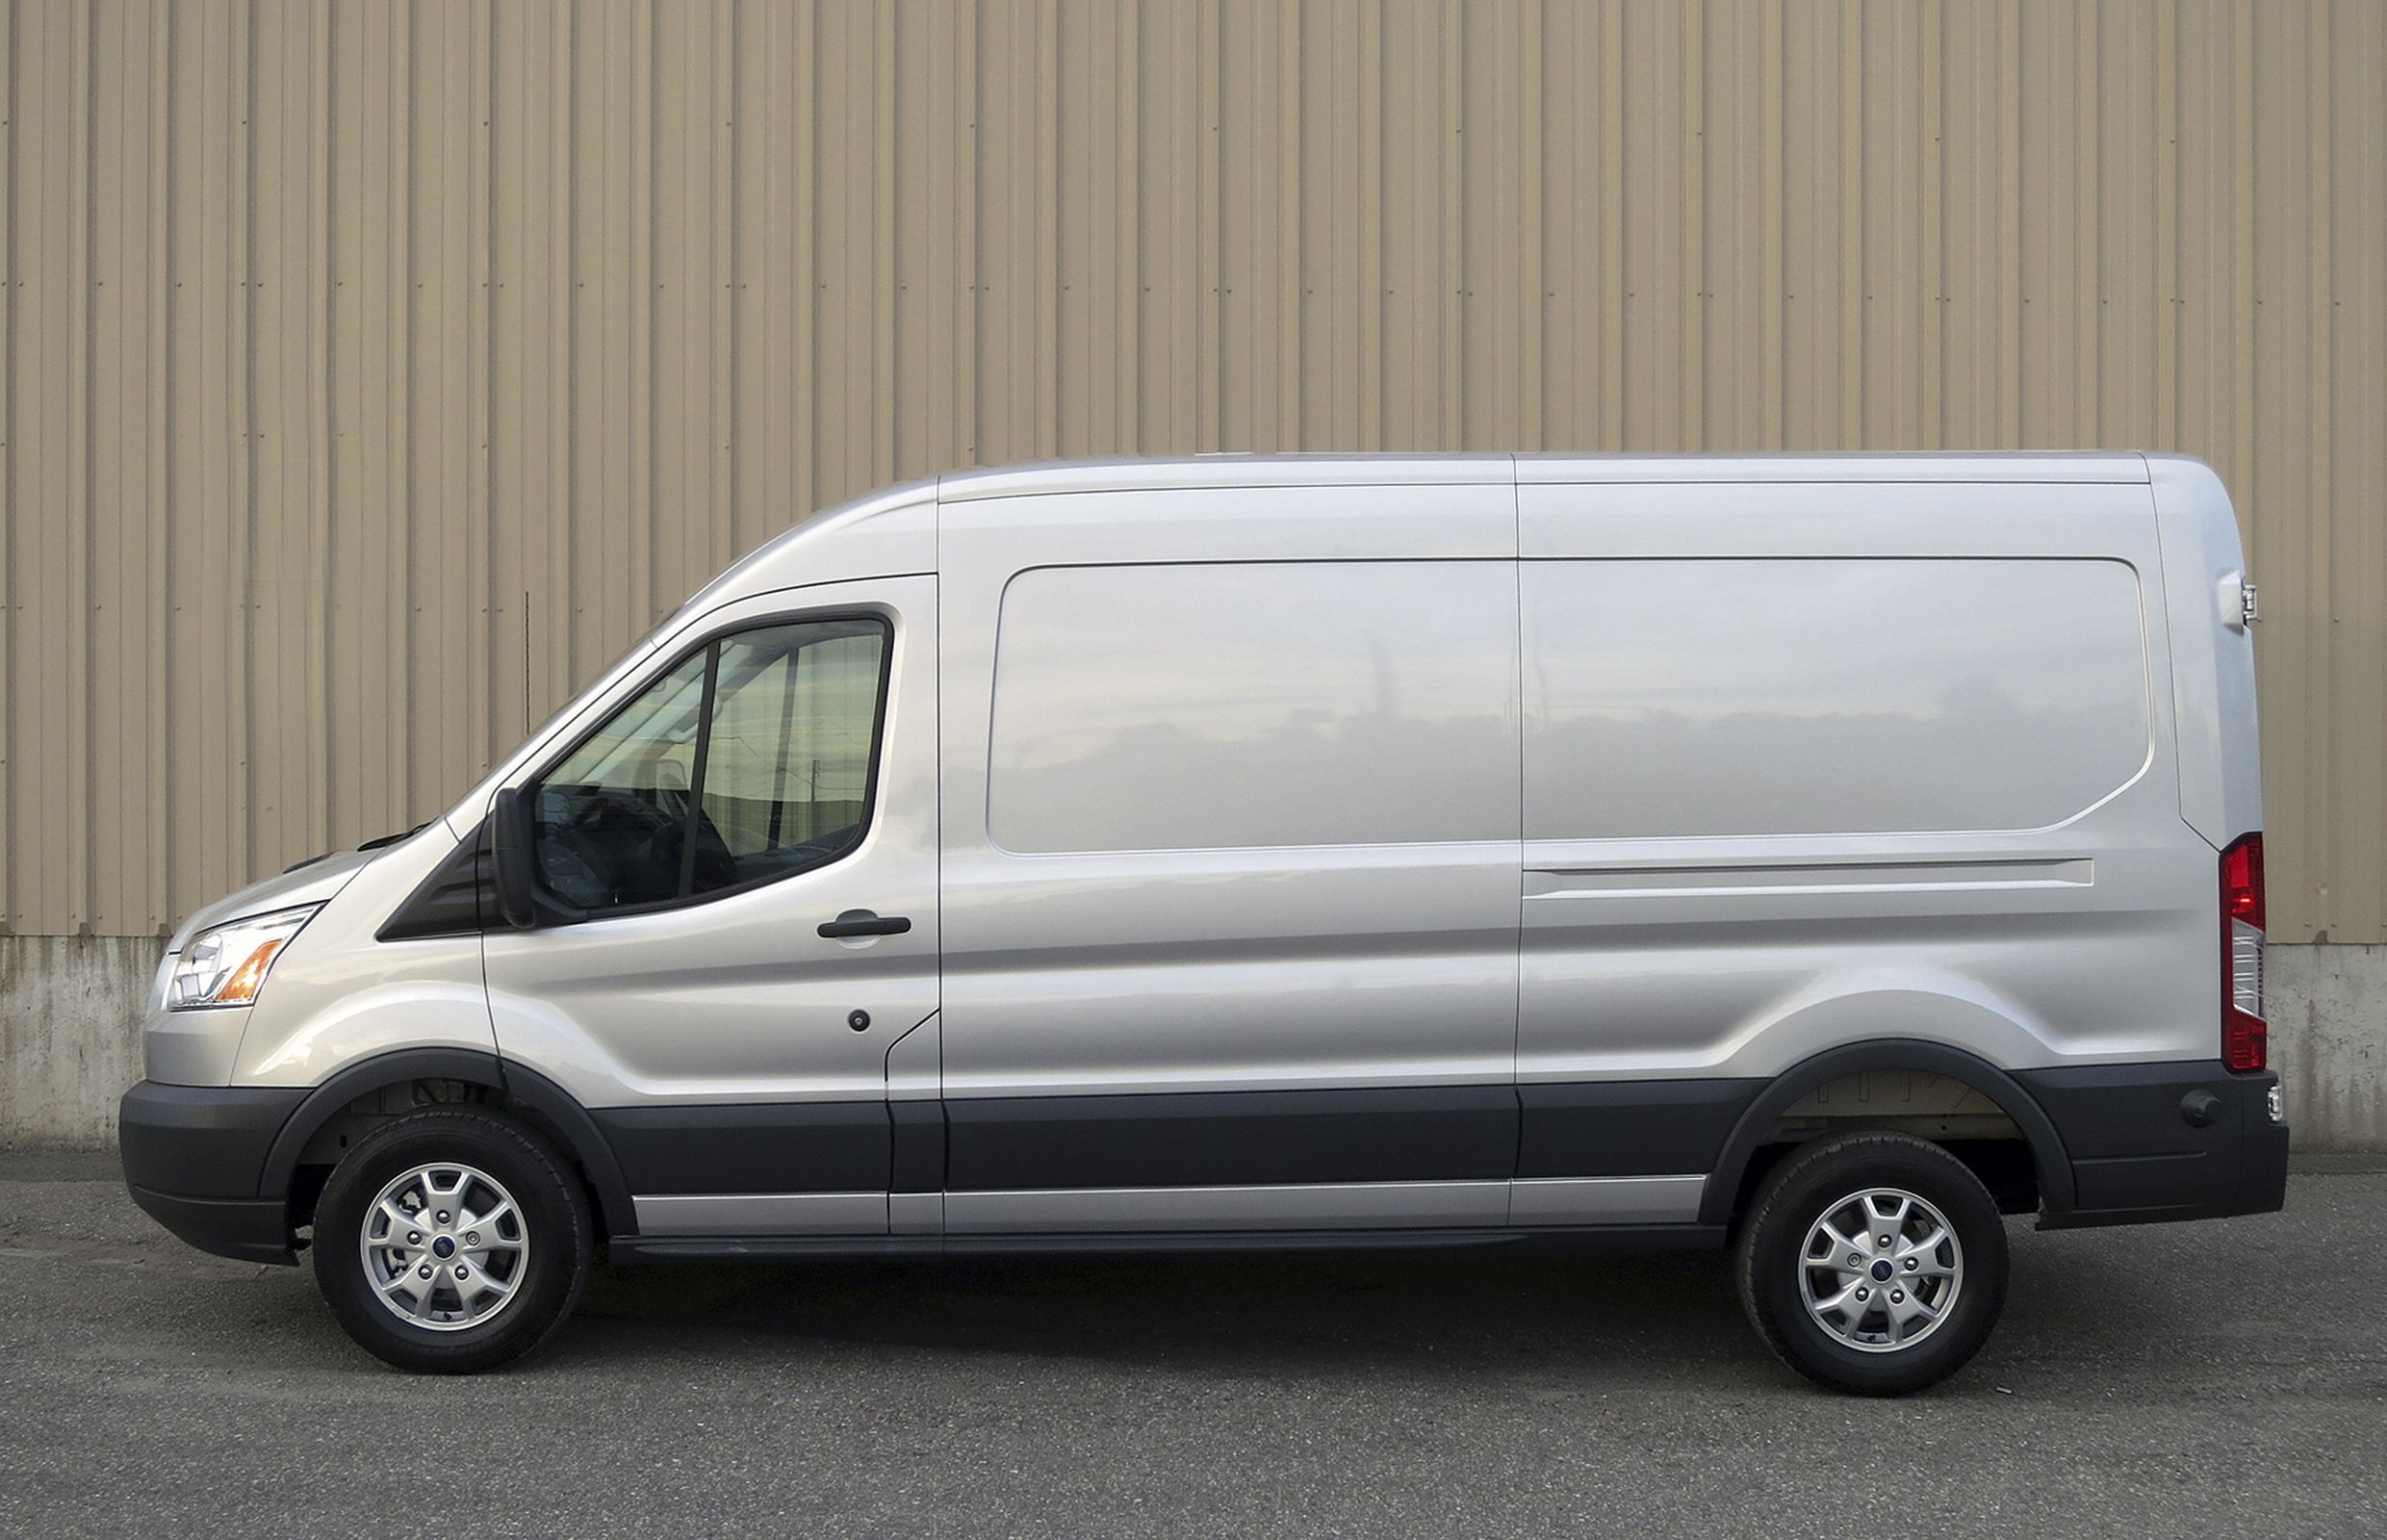 Ford_Transit_Profile.jpg